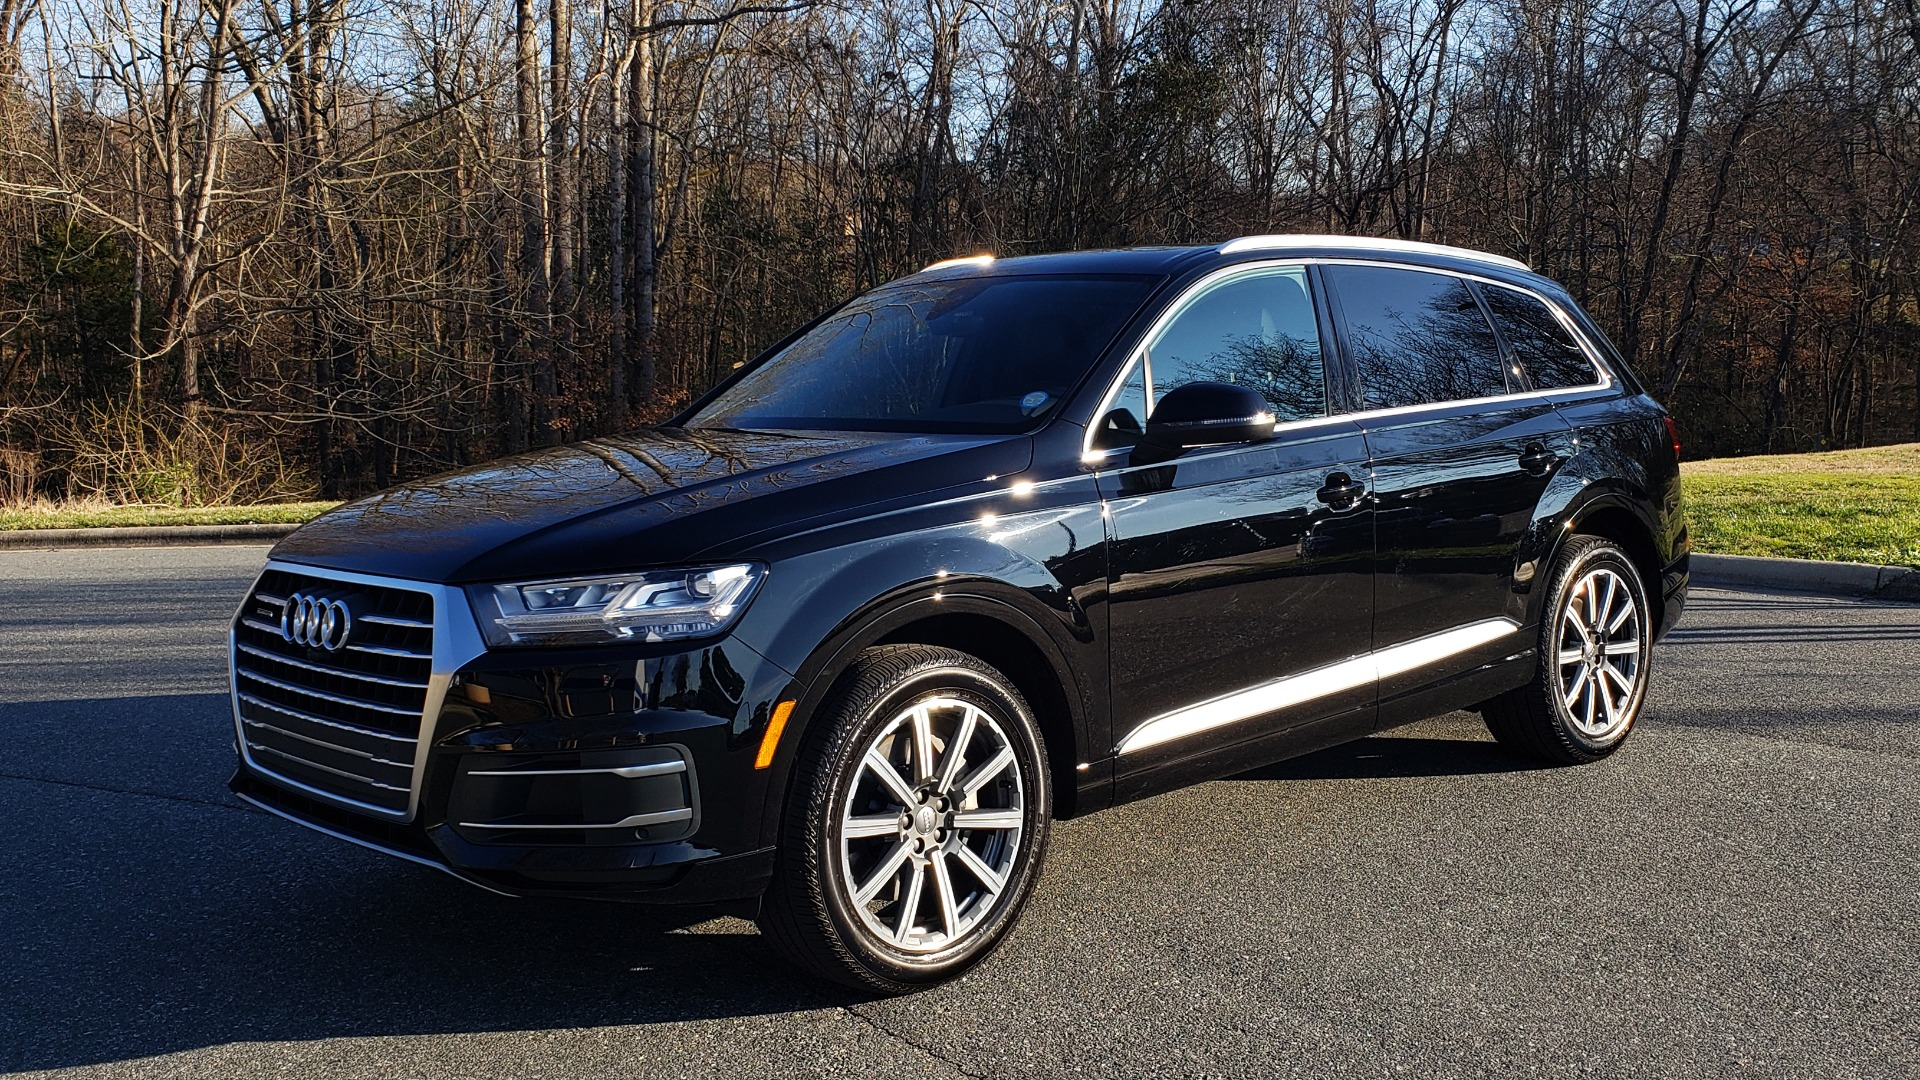 Used 2019 Audi Q7 PREMIUM PLUS / NAV / PANO-ROOF / 3-ROW / REARVIEW for sale Sold at Formula Imports in Charlotte NC 28227 1